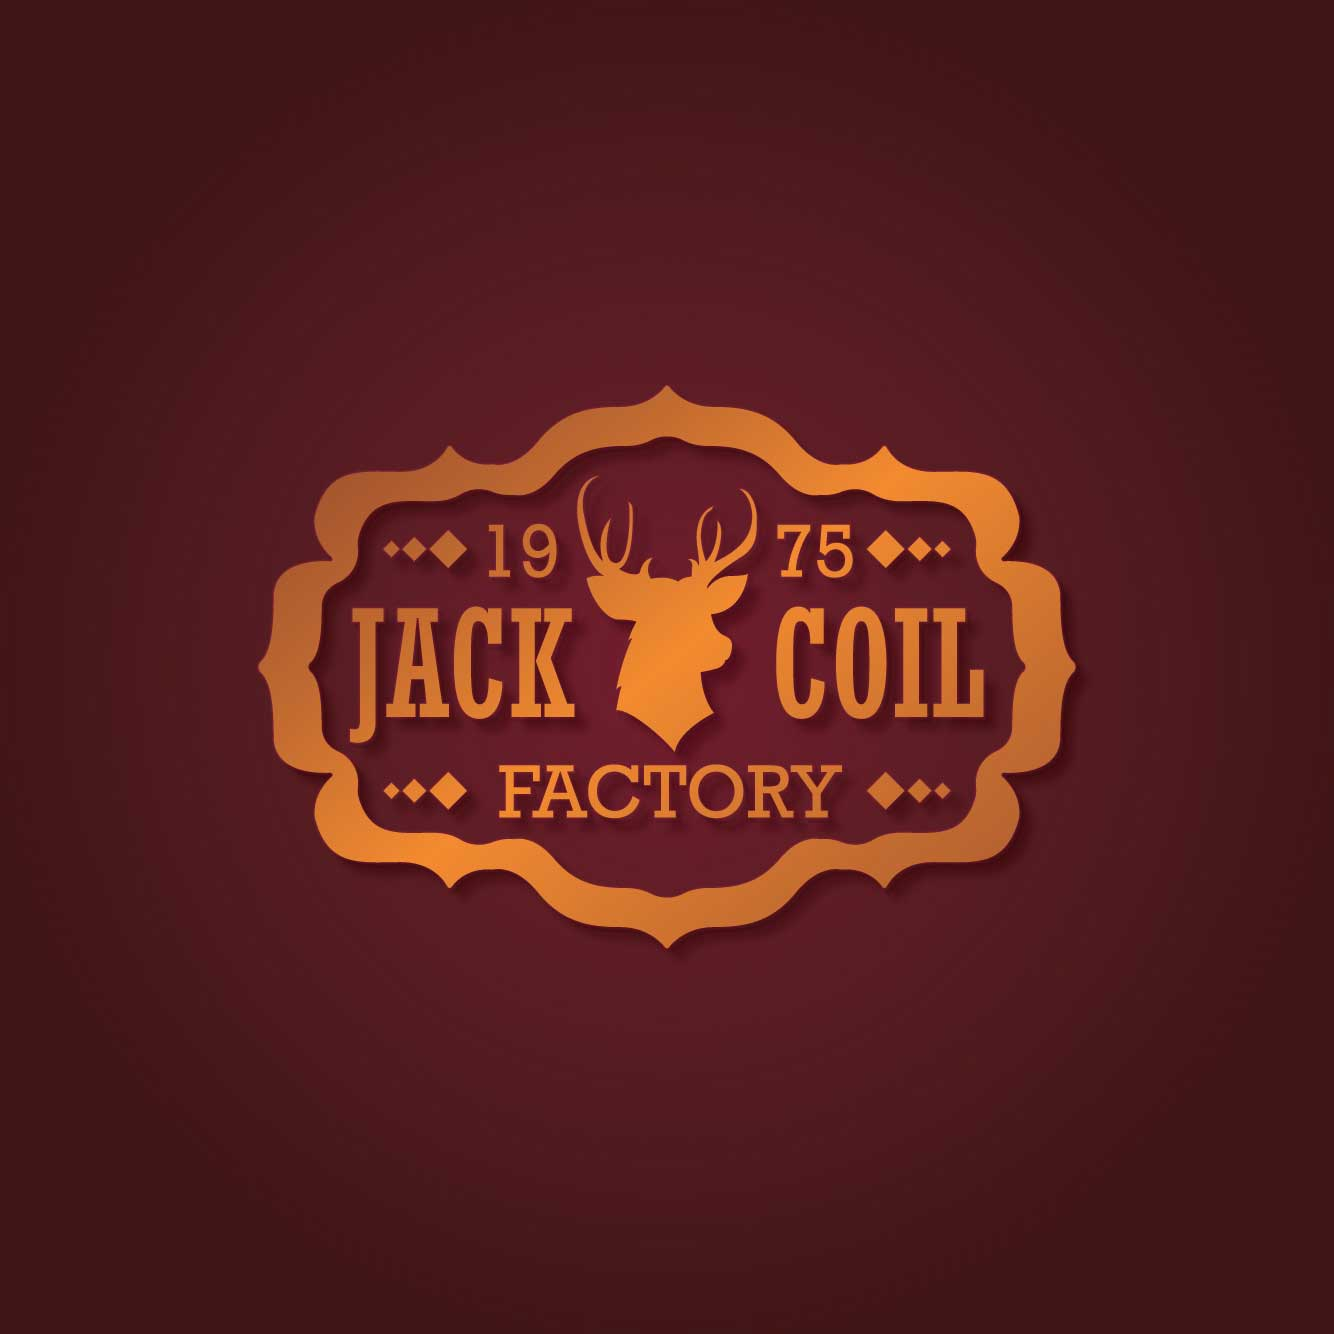 logo design service for Jack Coil Factory